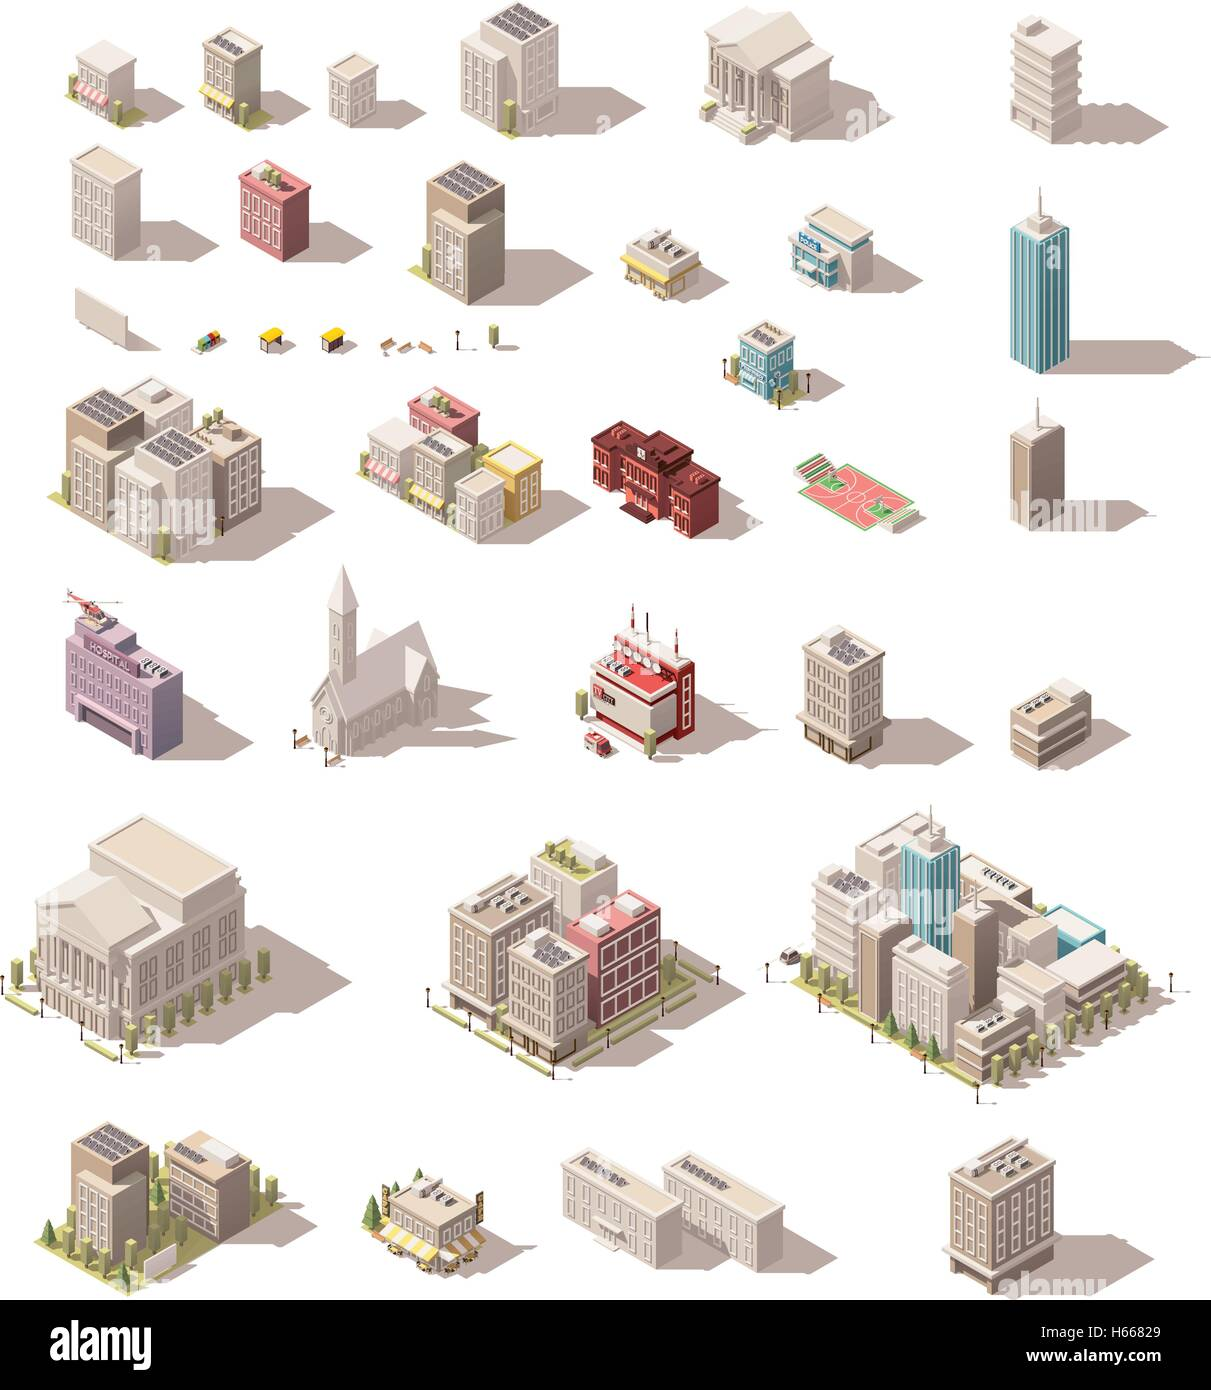 Vector isometric low poly buildings set - Stock Image